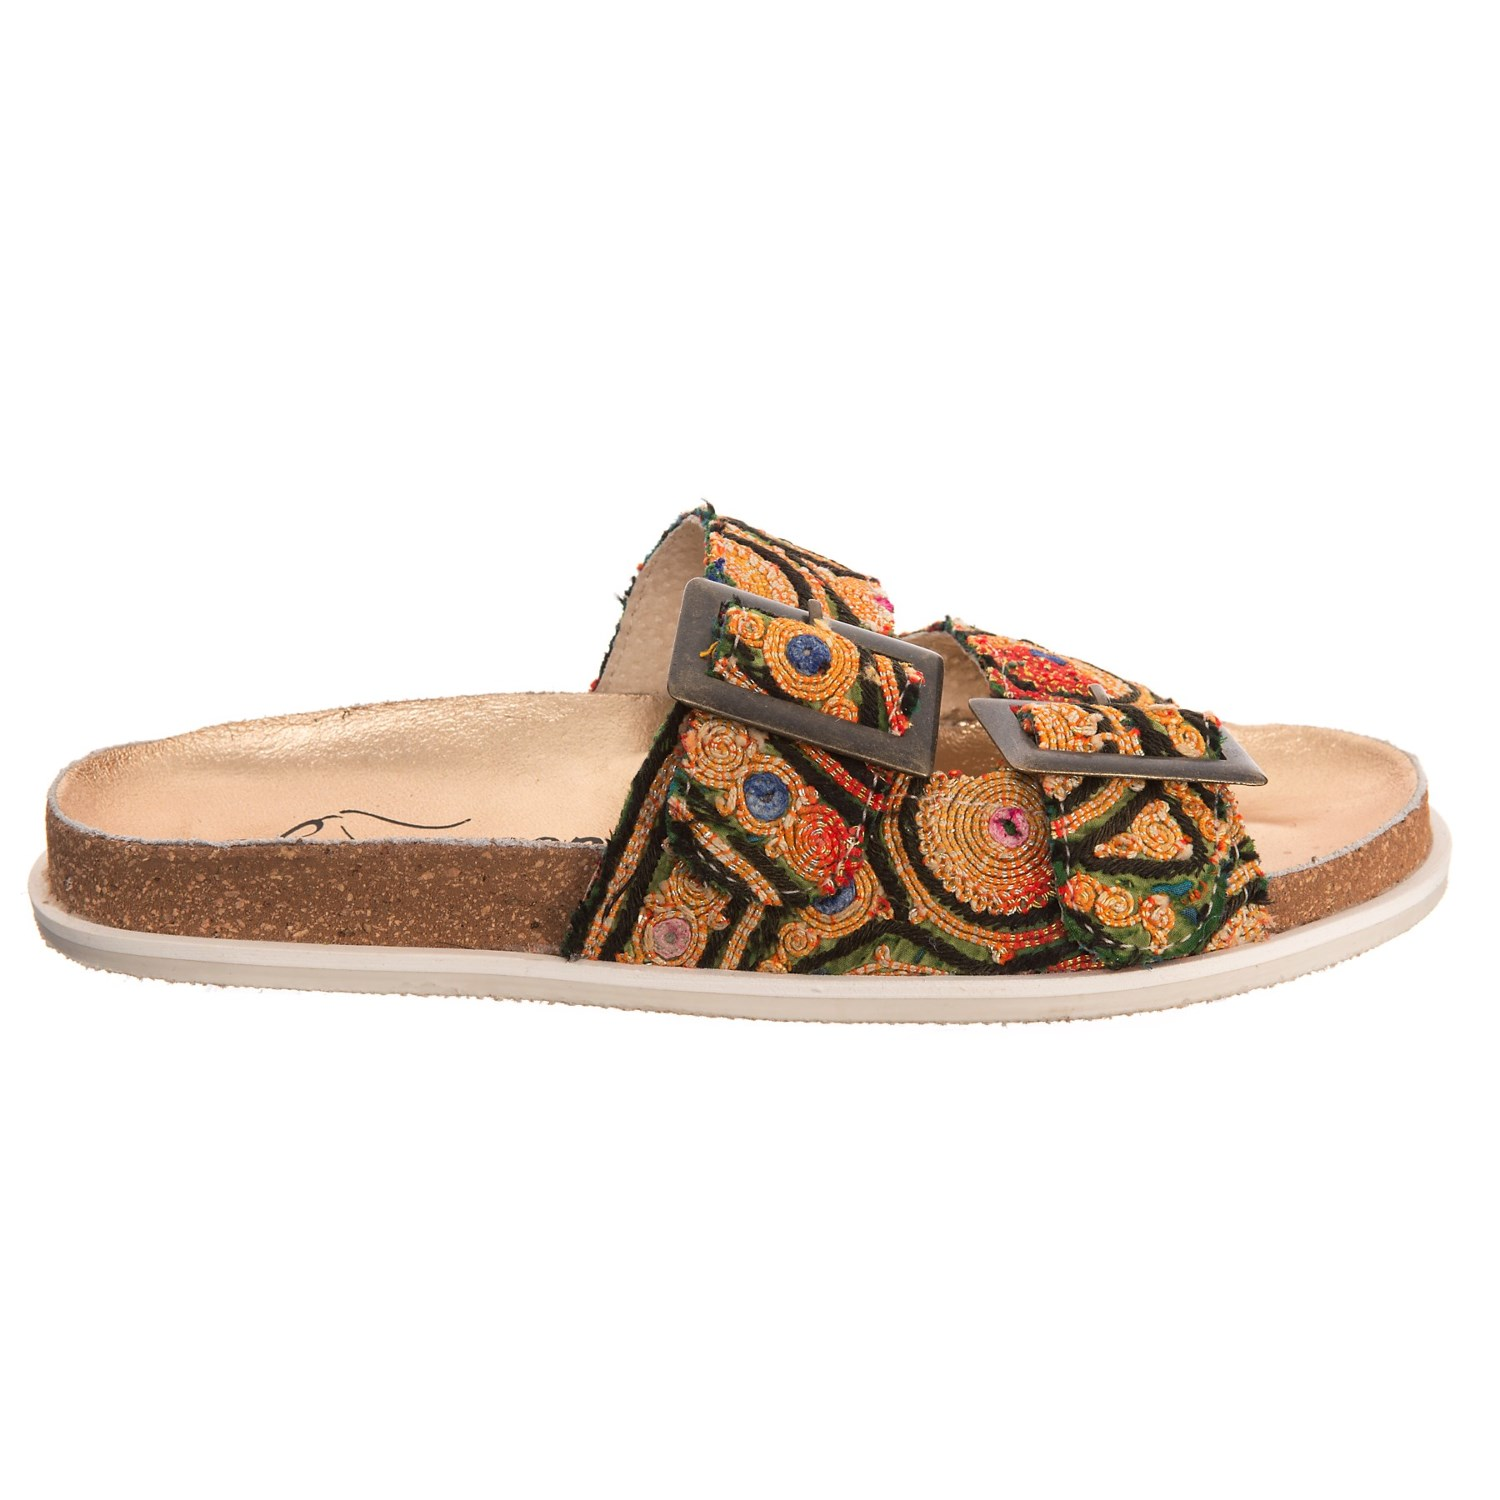 7de6a2317 Free People Bali Footbed Sandals (For Women) - Save 25%